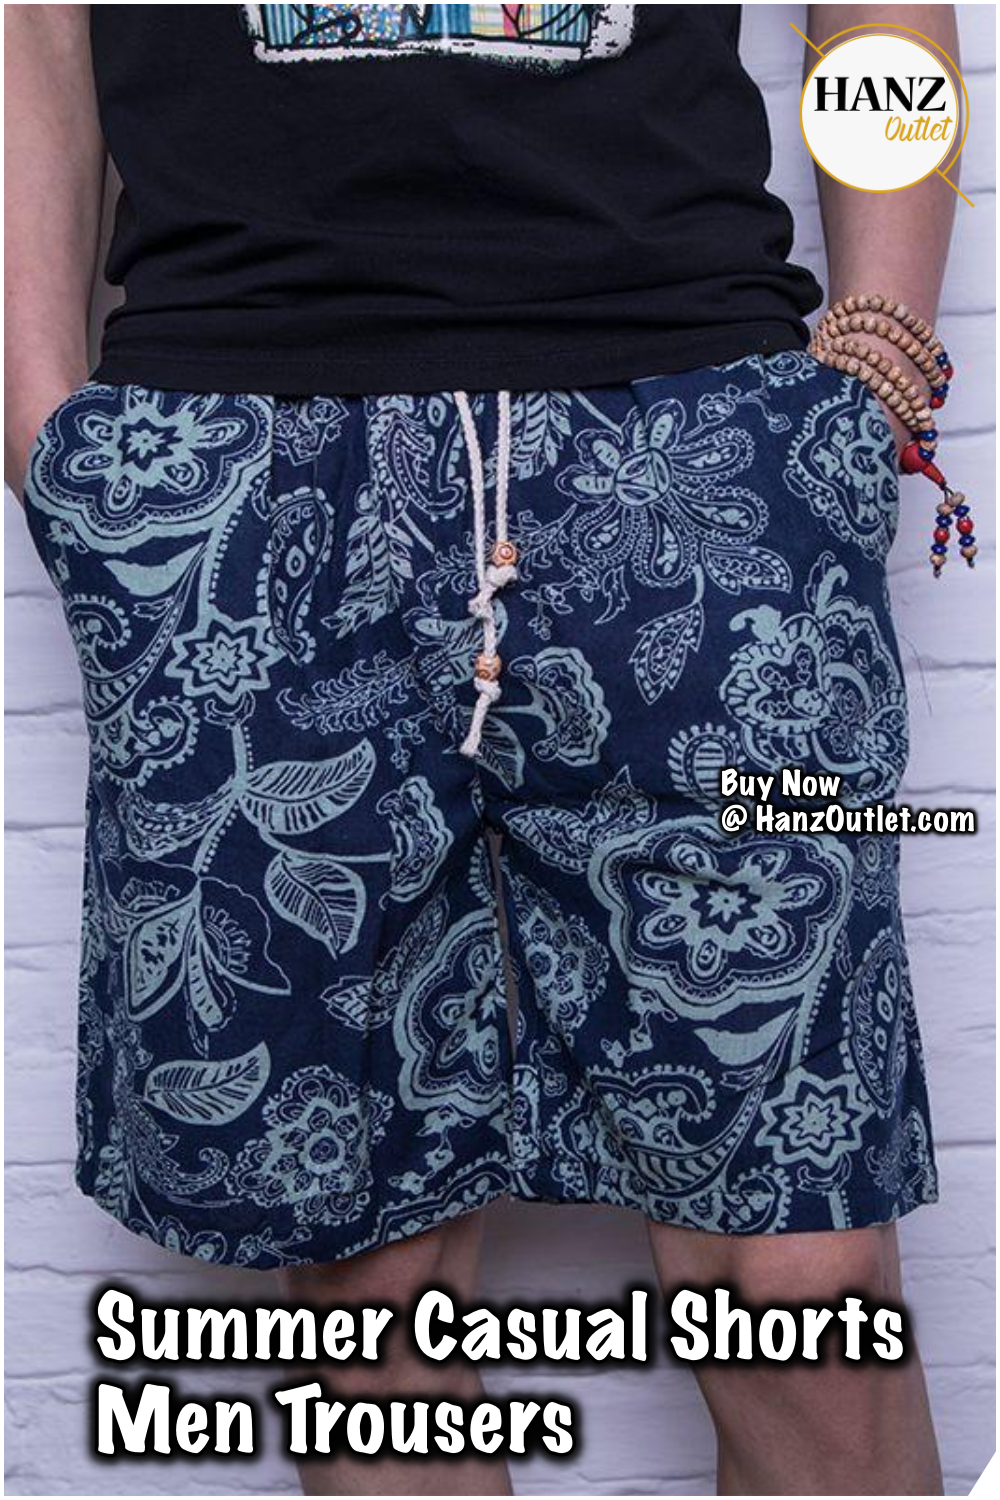 b4f5dd62a03 2018 Summer Casual Shorts Men Trousers Male Camouflage Fashion Flowers  Print Straight Short Beach Mens Clothing H6  Casual  Shorts  Men  Male   Trousers ...